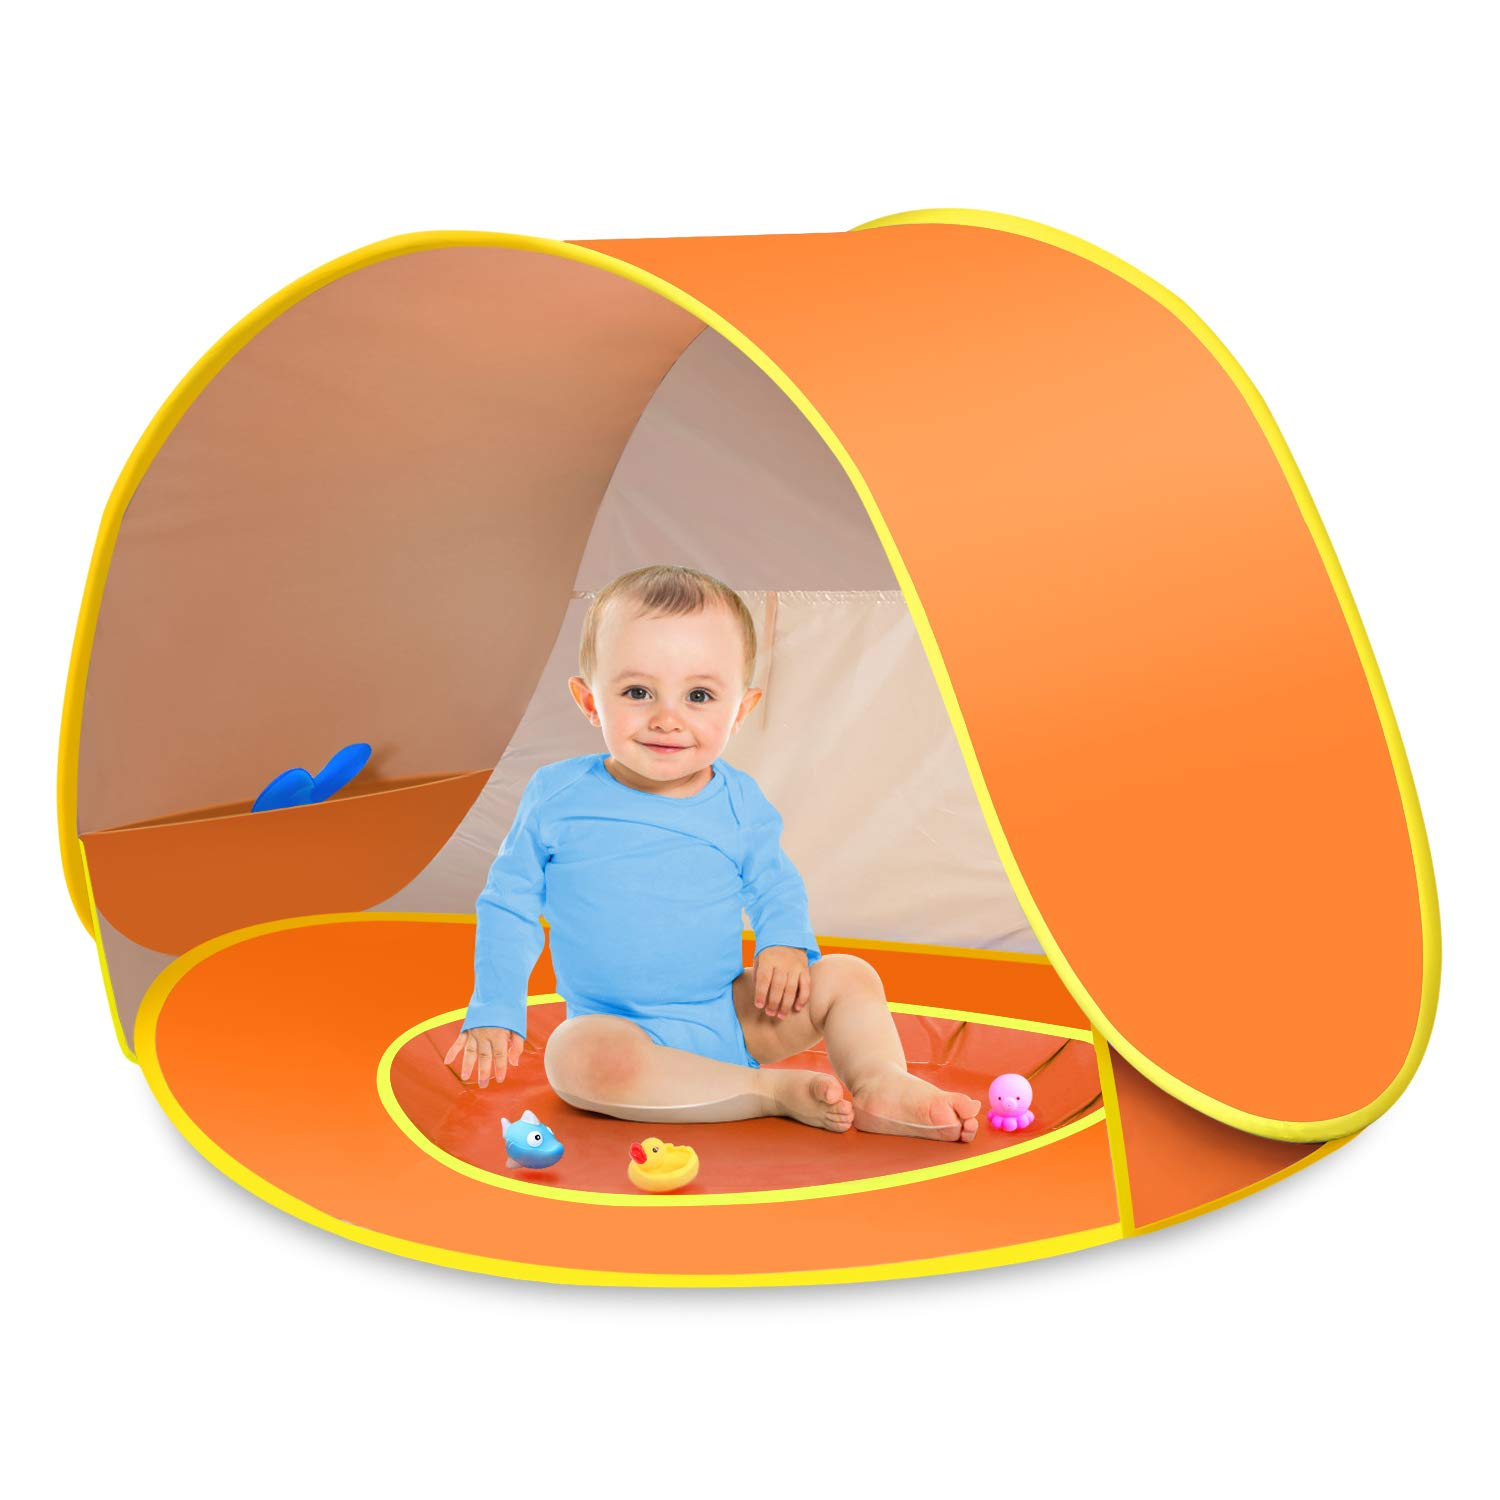 CeeKii Baby Beach Tent Pop Up Tent Portable Shade Tent UV Protection Sun Shelter with Mini Pool, Carry Bag and Detachable Shade for Toddler, Infant & Kids, 50+ UPF